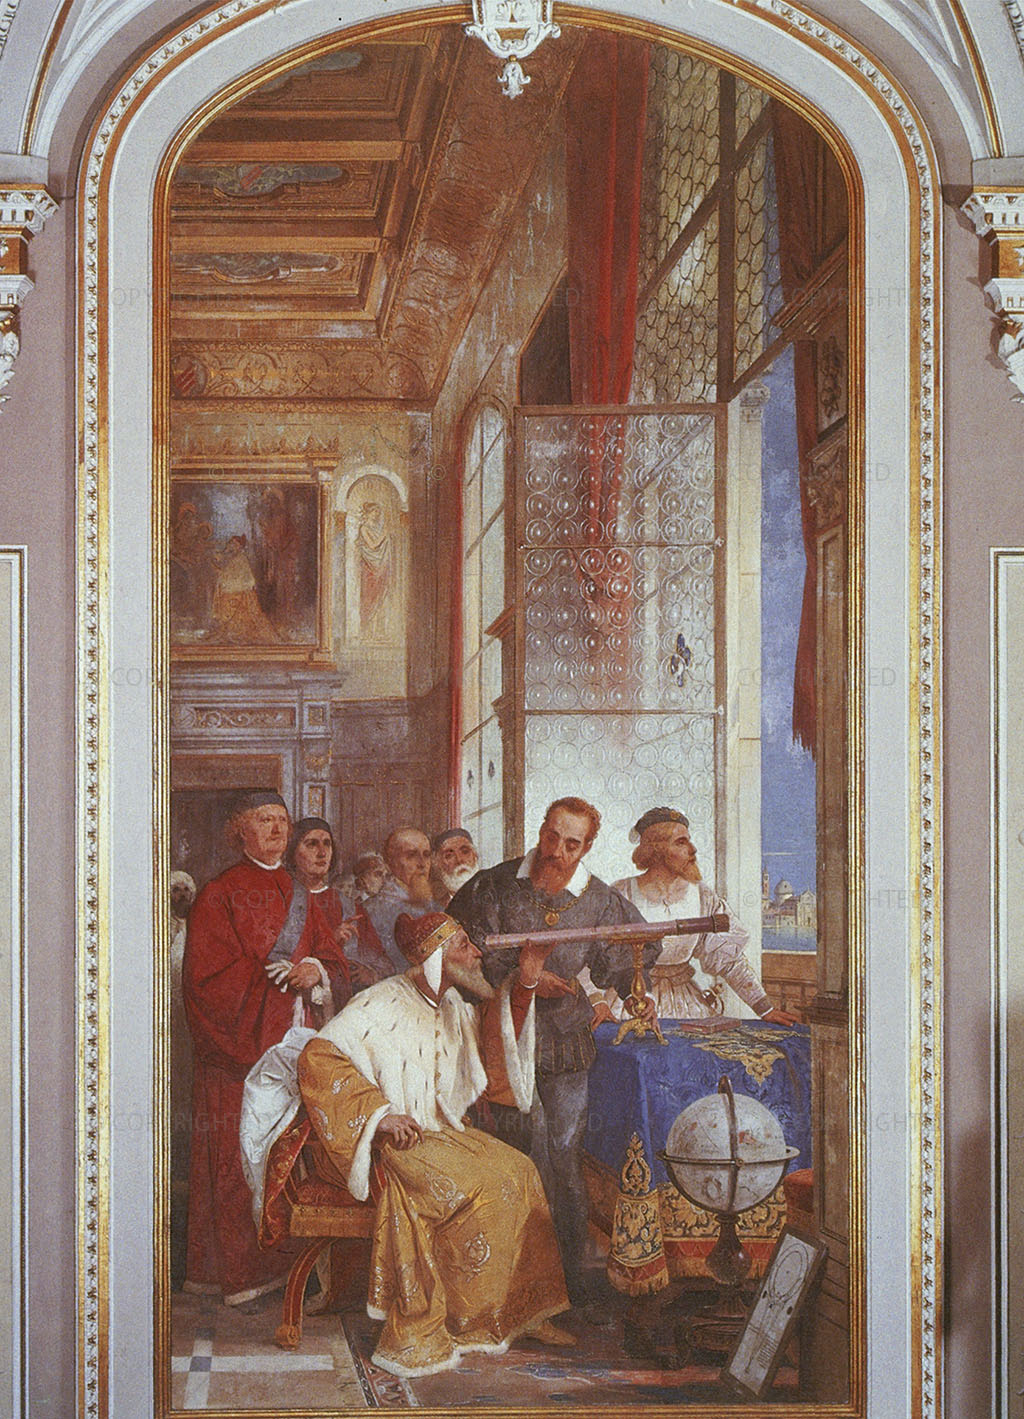 1858, Fresco, cm 491 x 238, Biumo di Varese, Villa Ponti, Hall of Honor